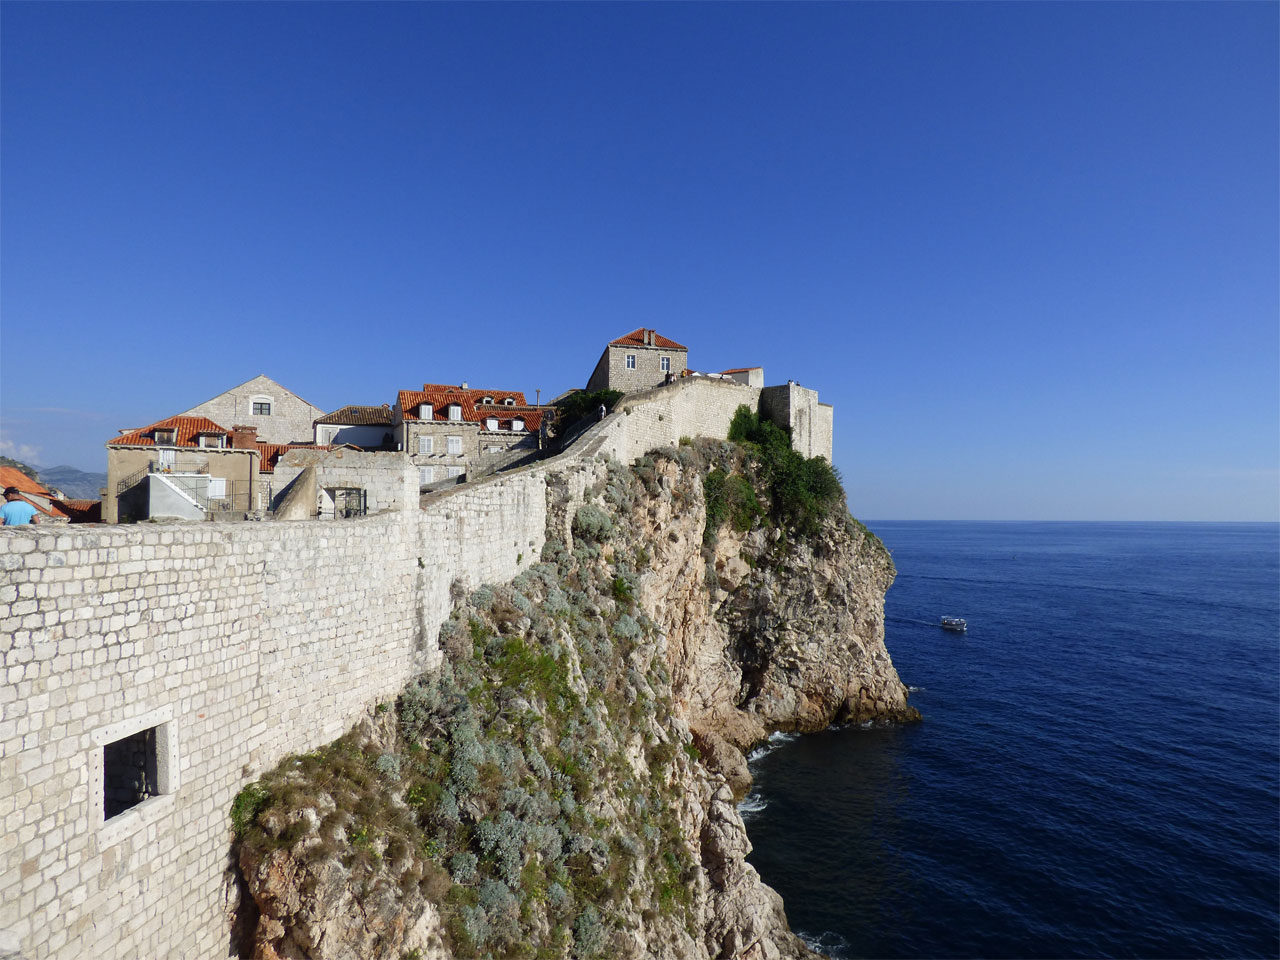 Old Town walls, Dubrovnik